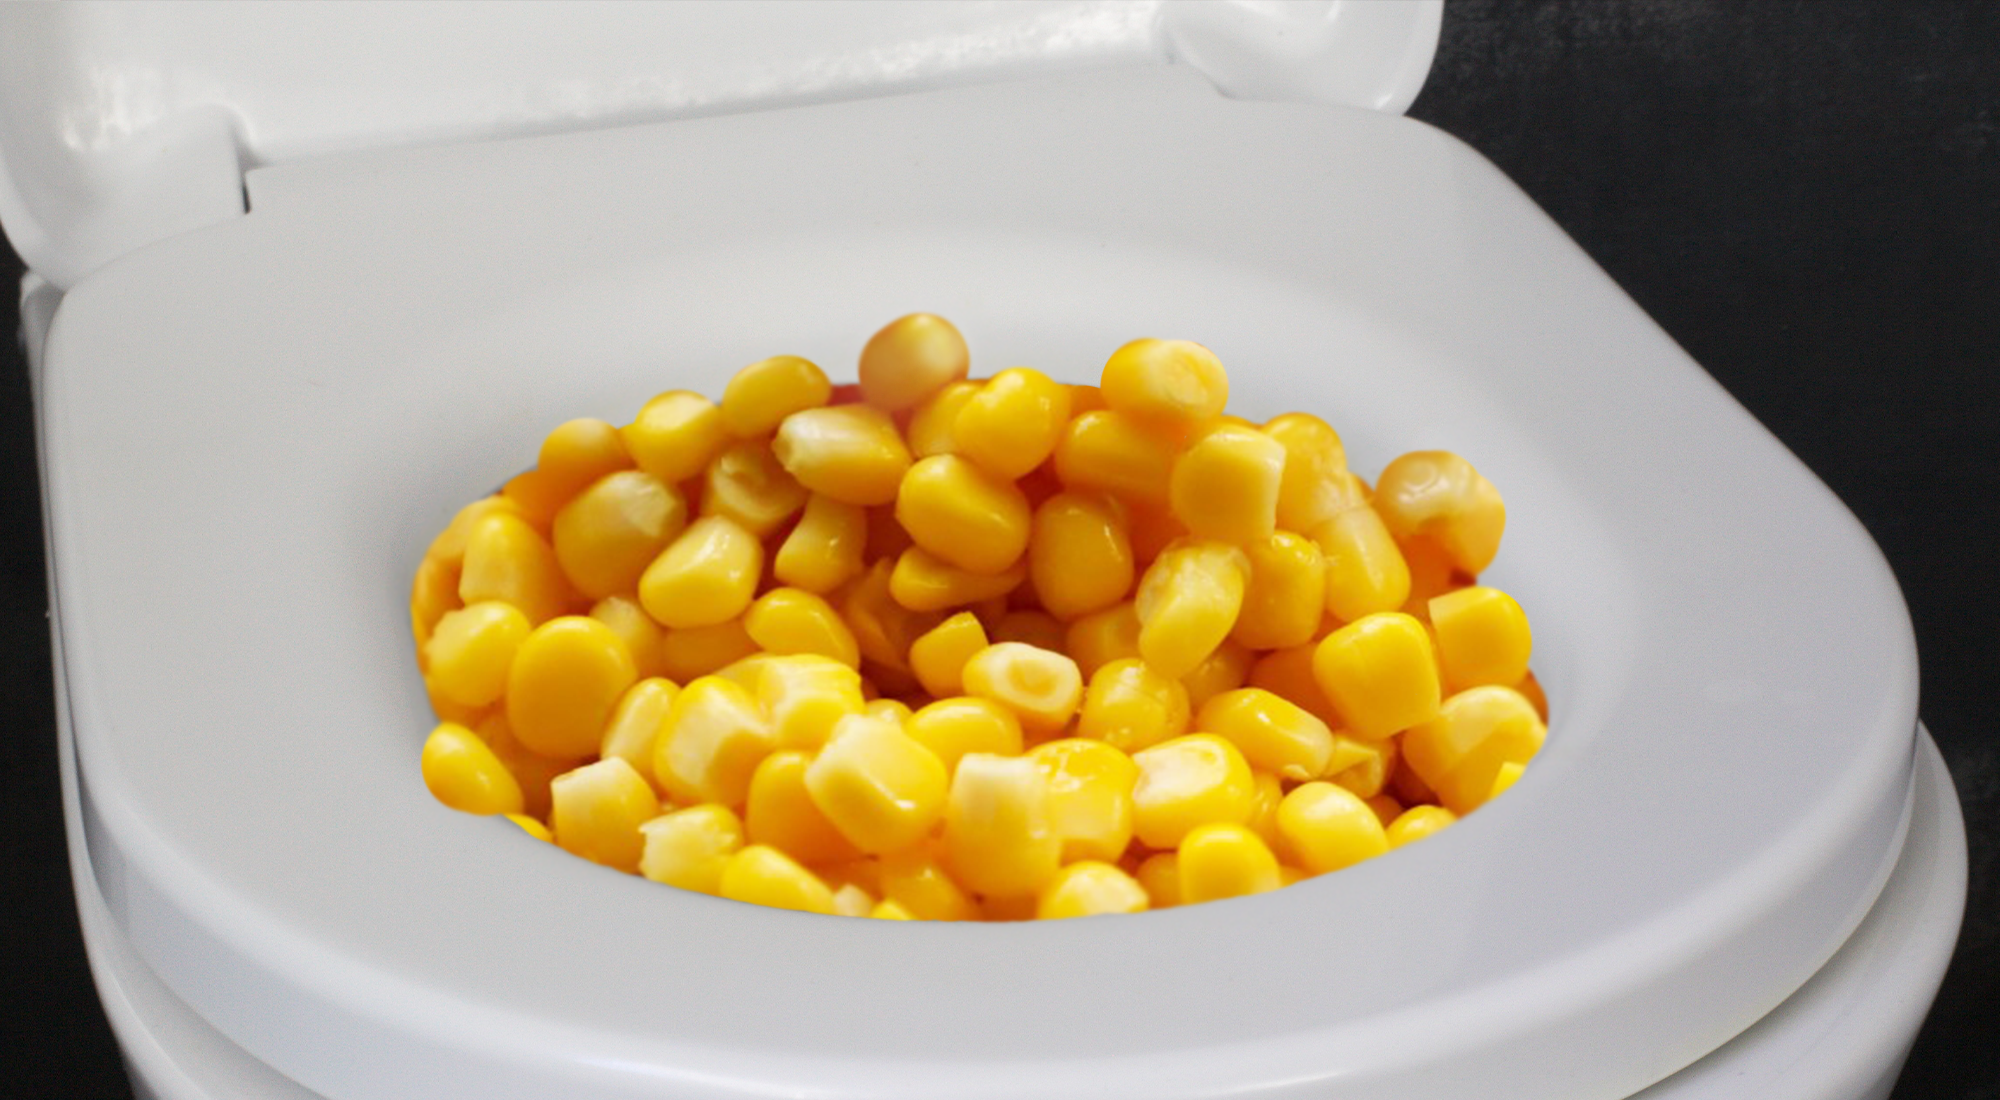 2. Have you experienced corn in your stool in the past 48 hours? Don't be shy, this is a judgement-free zone.